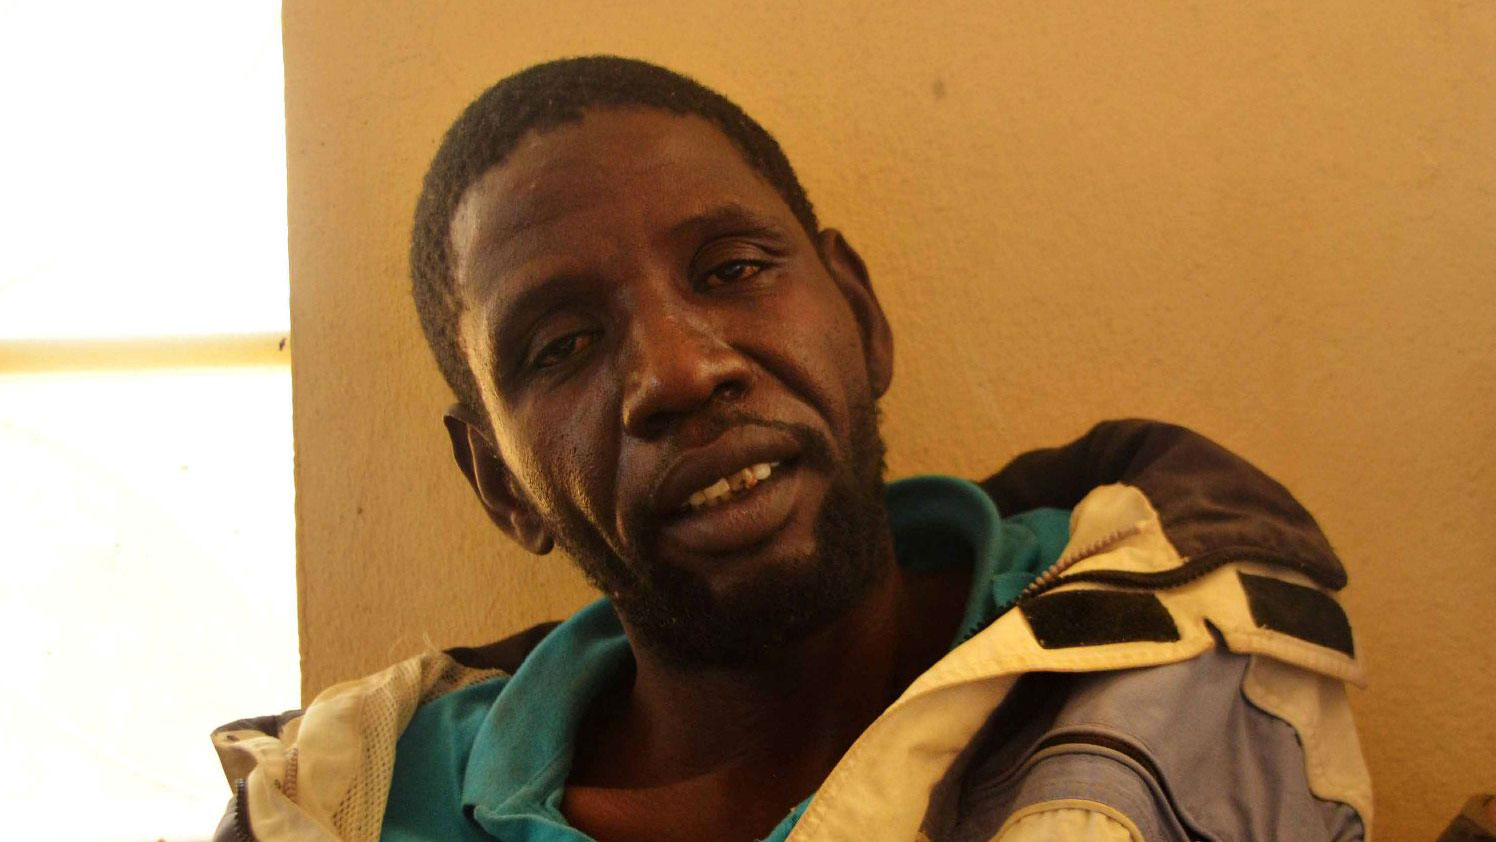 Moussa Ibrahim, a restaurant owner in Timbuktu has been detained in the gendarmerie in Gao for one month. March 2013